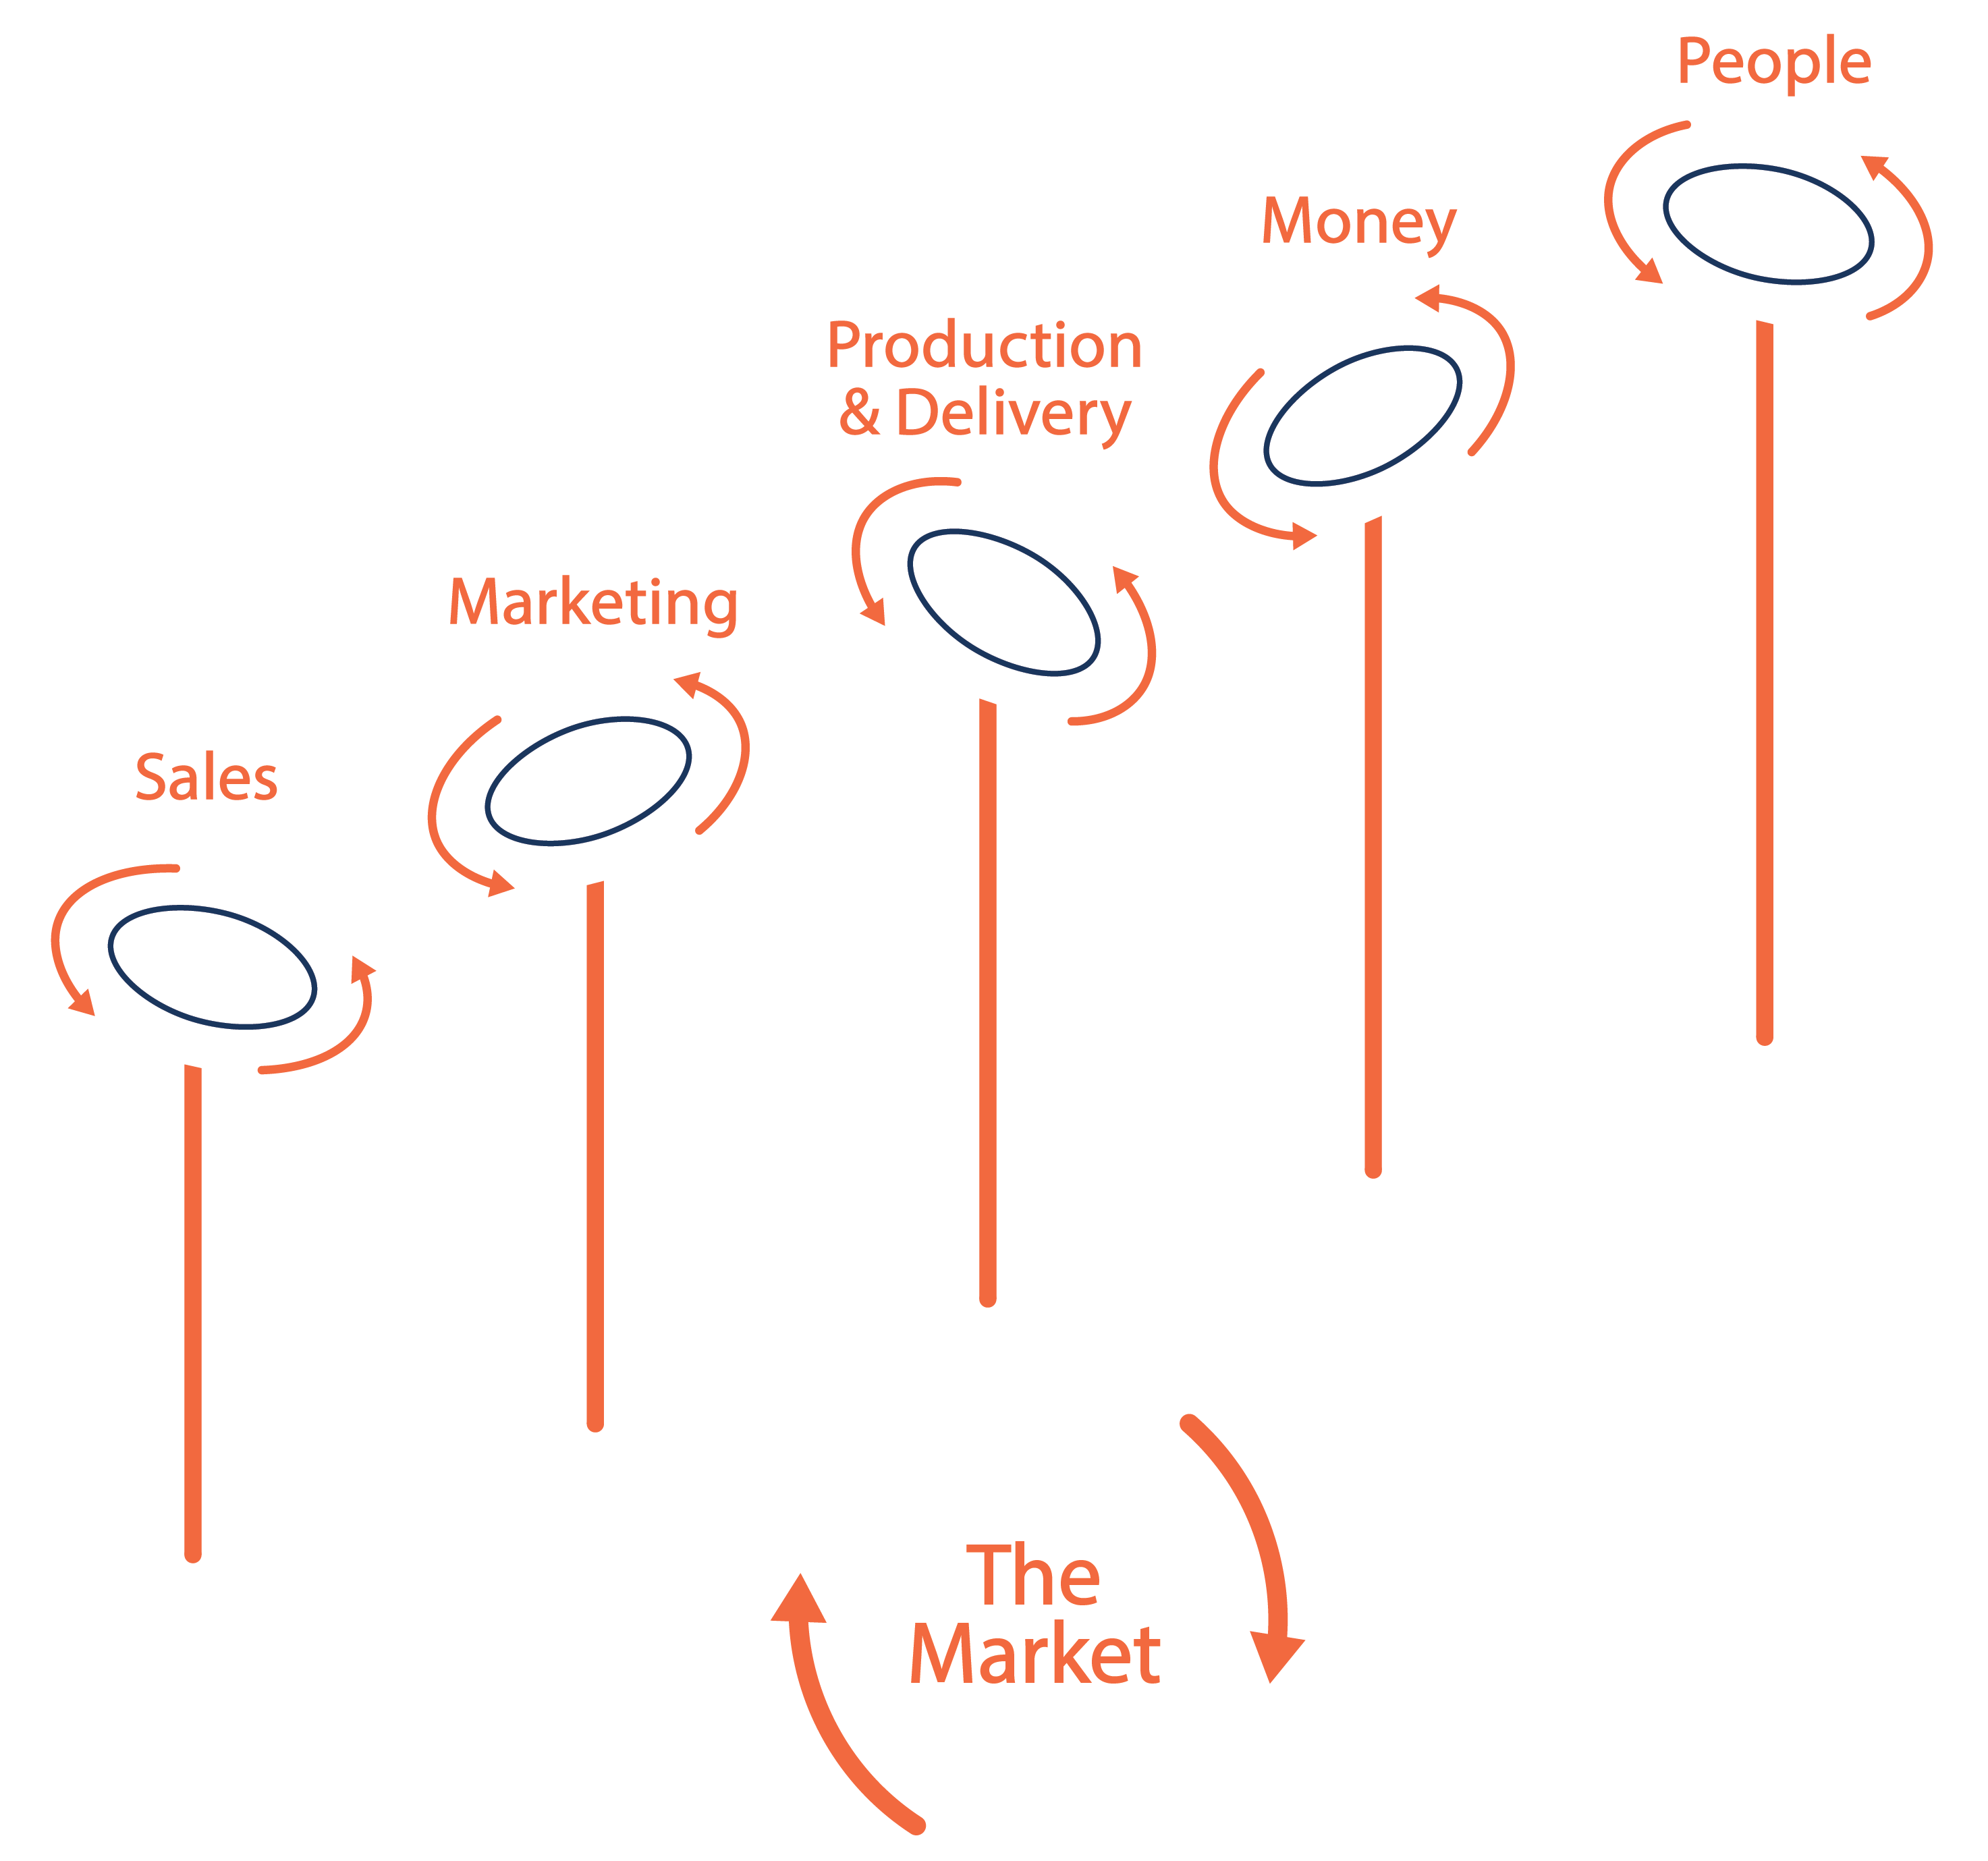 The Market Diagram